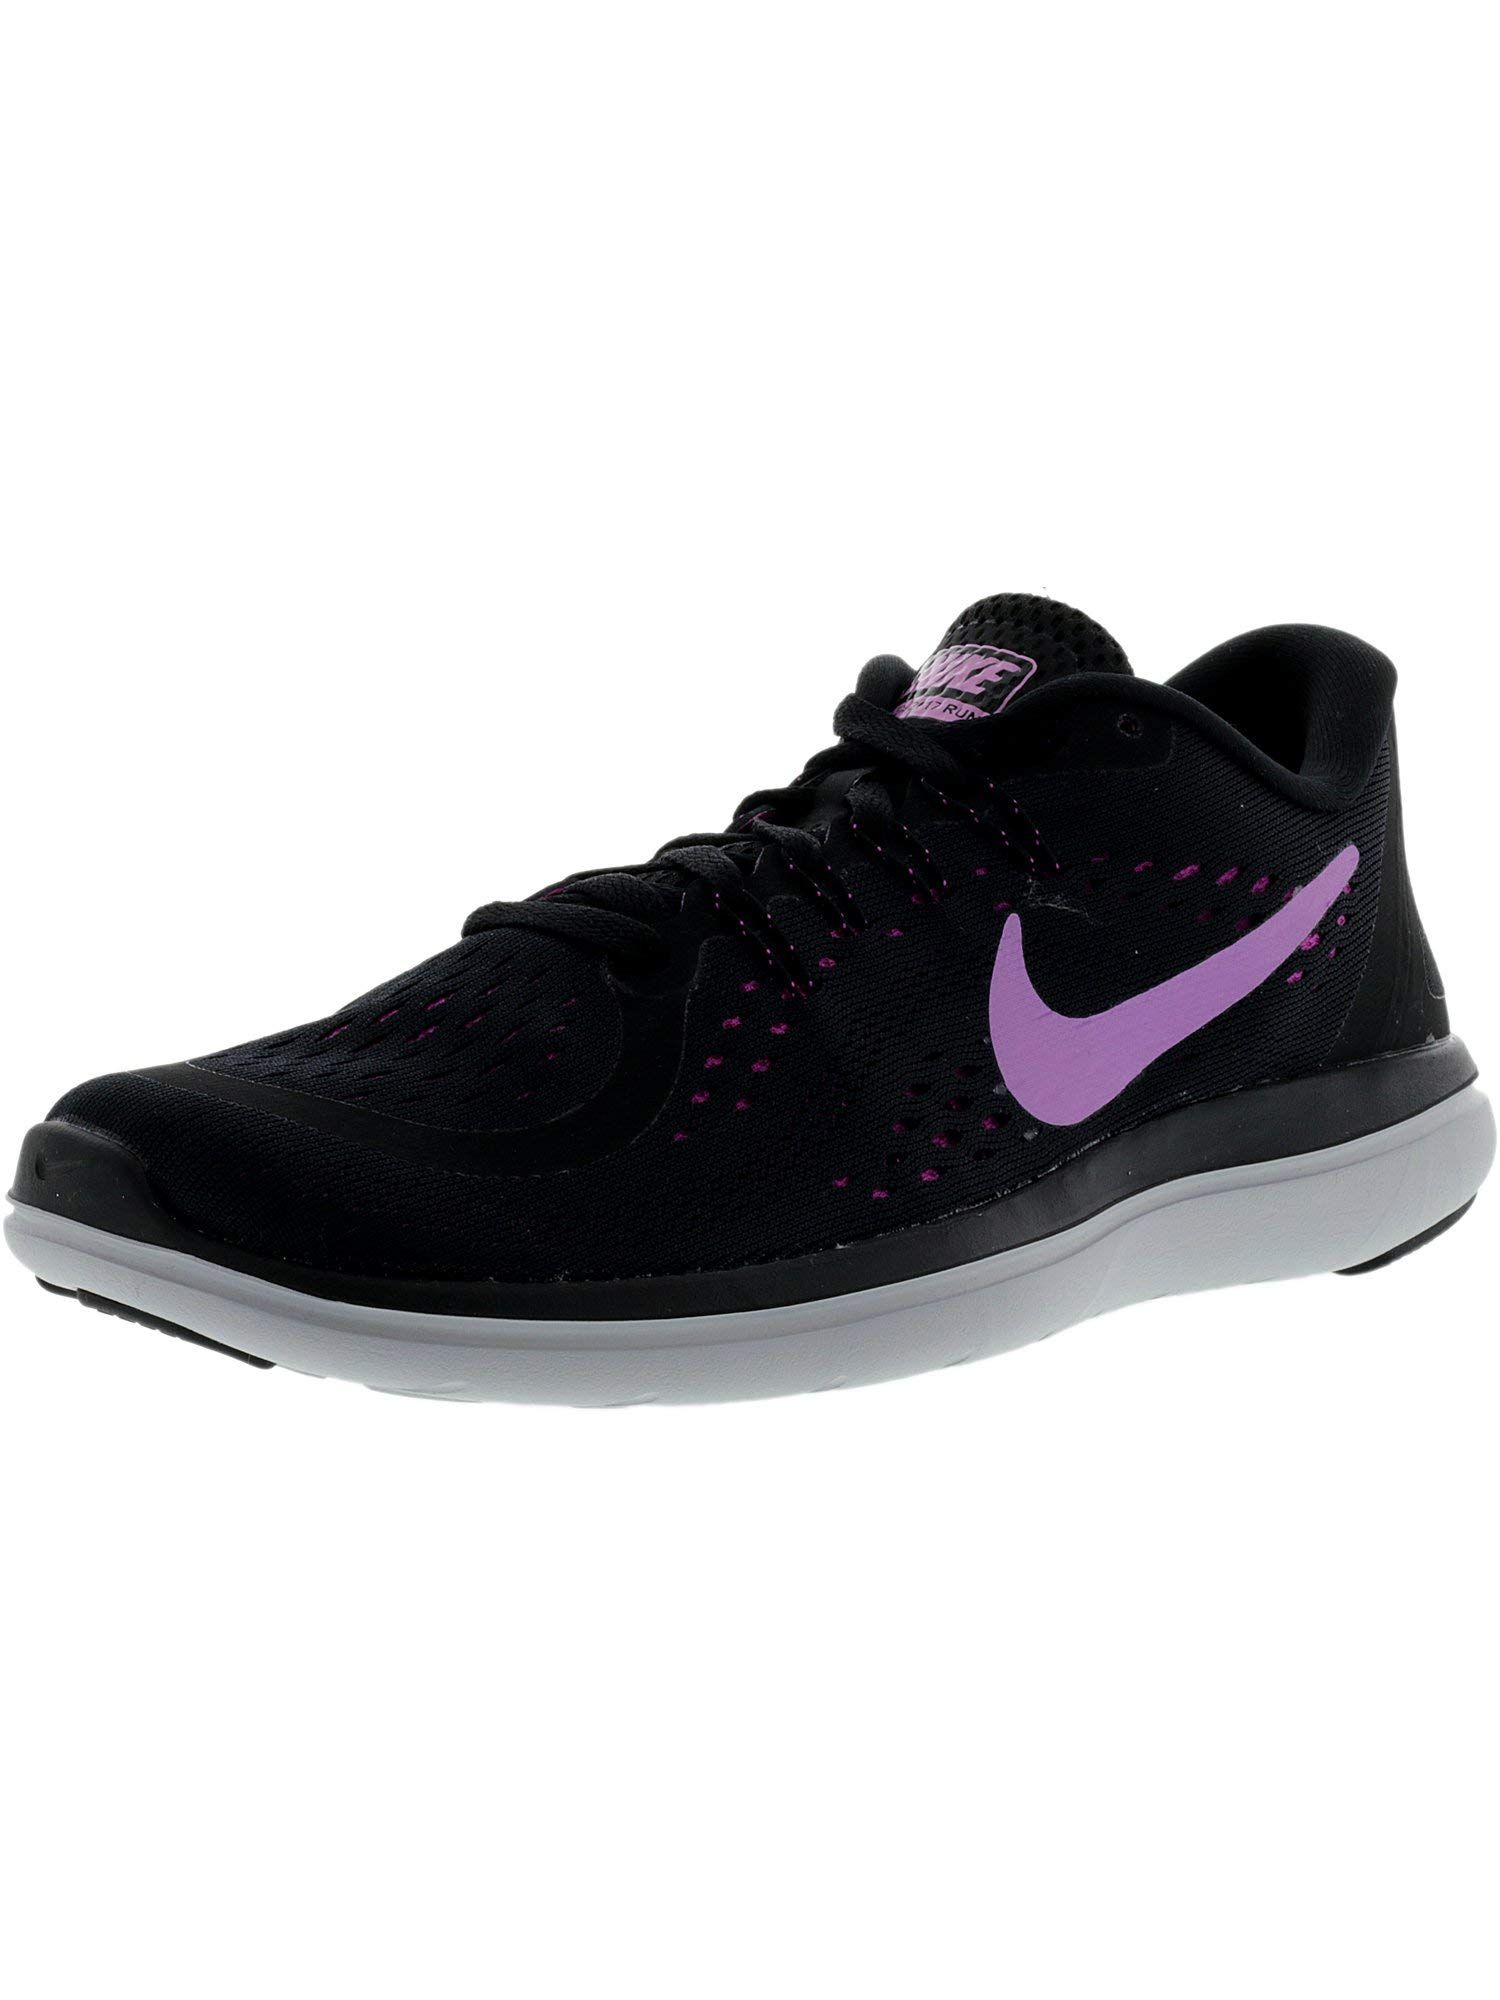 40bf7a50fe1b4 NIKE Womens Flex 2017 RN Running Shoe Black Fuchsia Glow Hyper Magenta Size  10 M US   Learn more by visiting the image link-affiliate link.